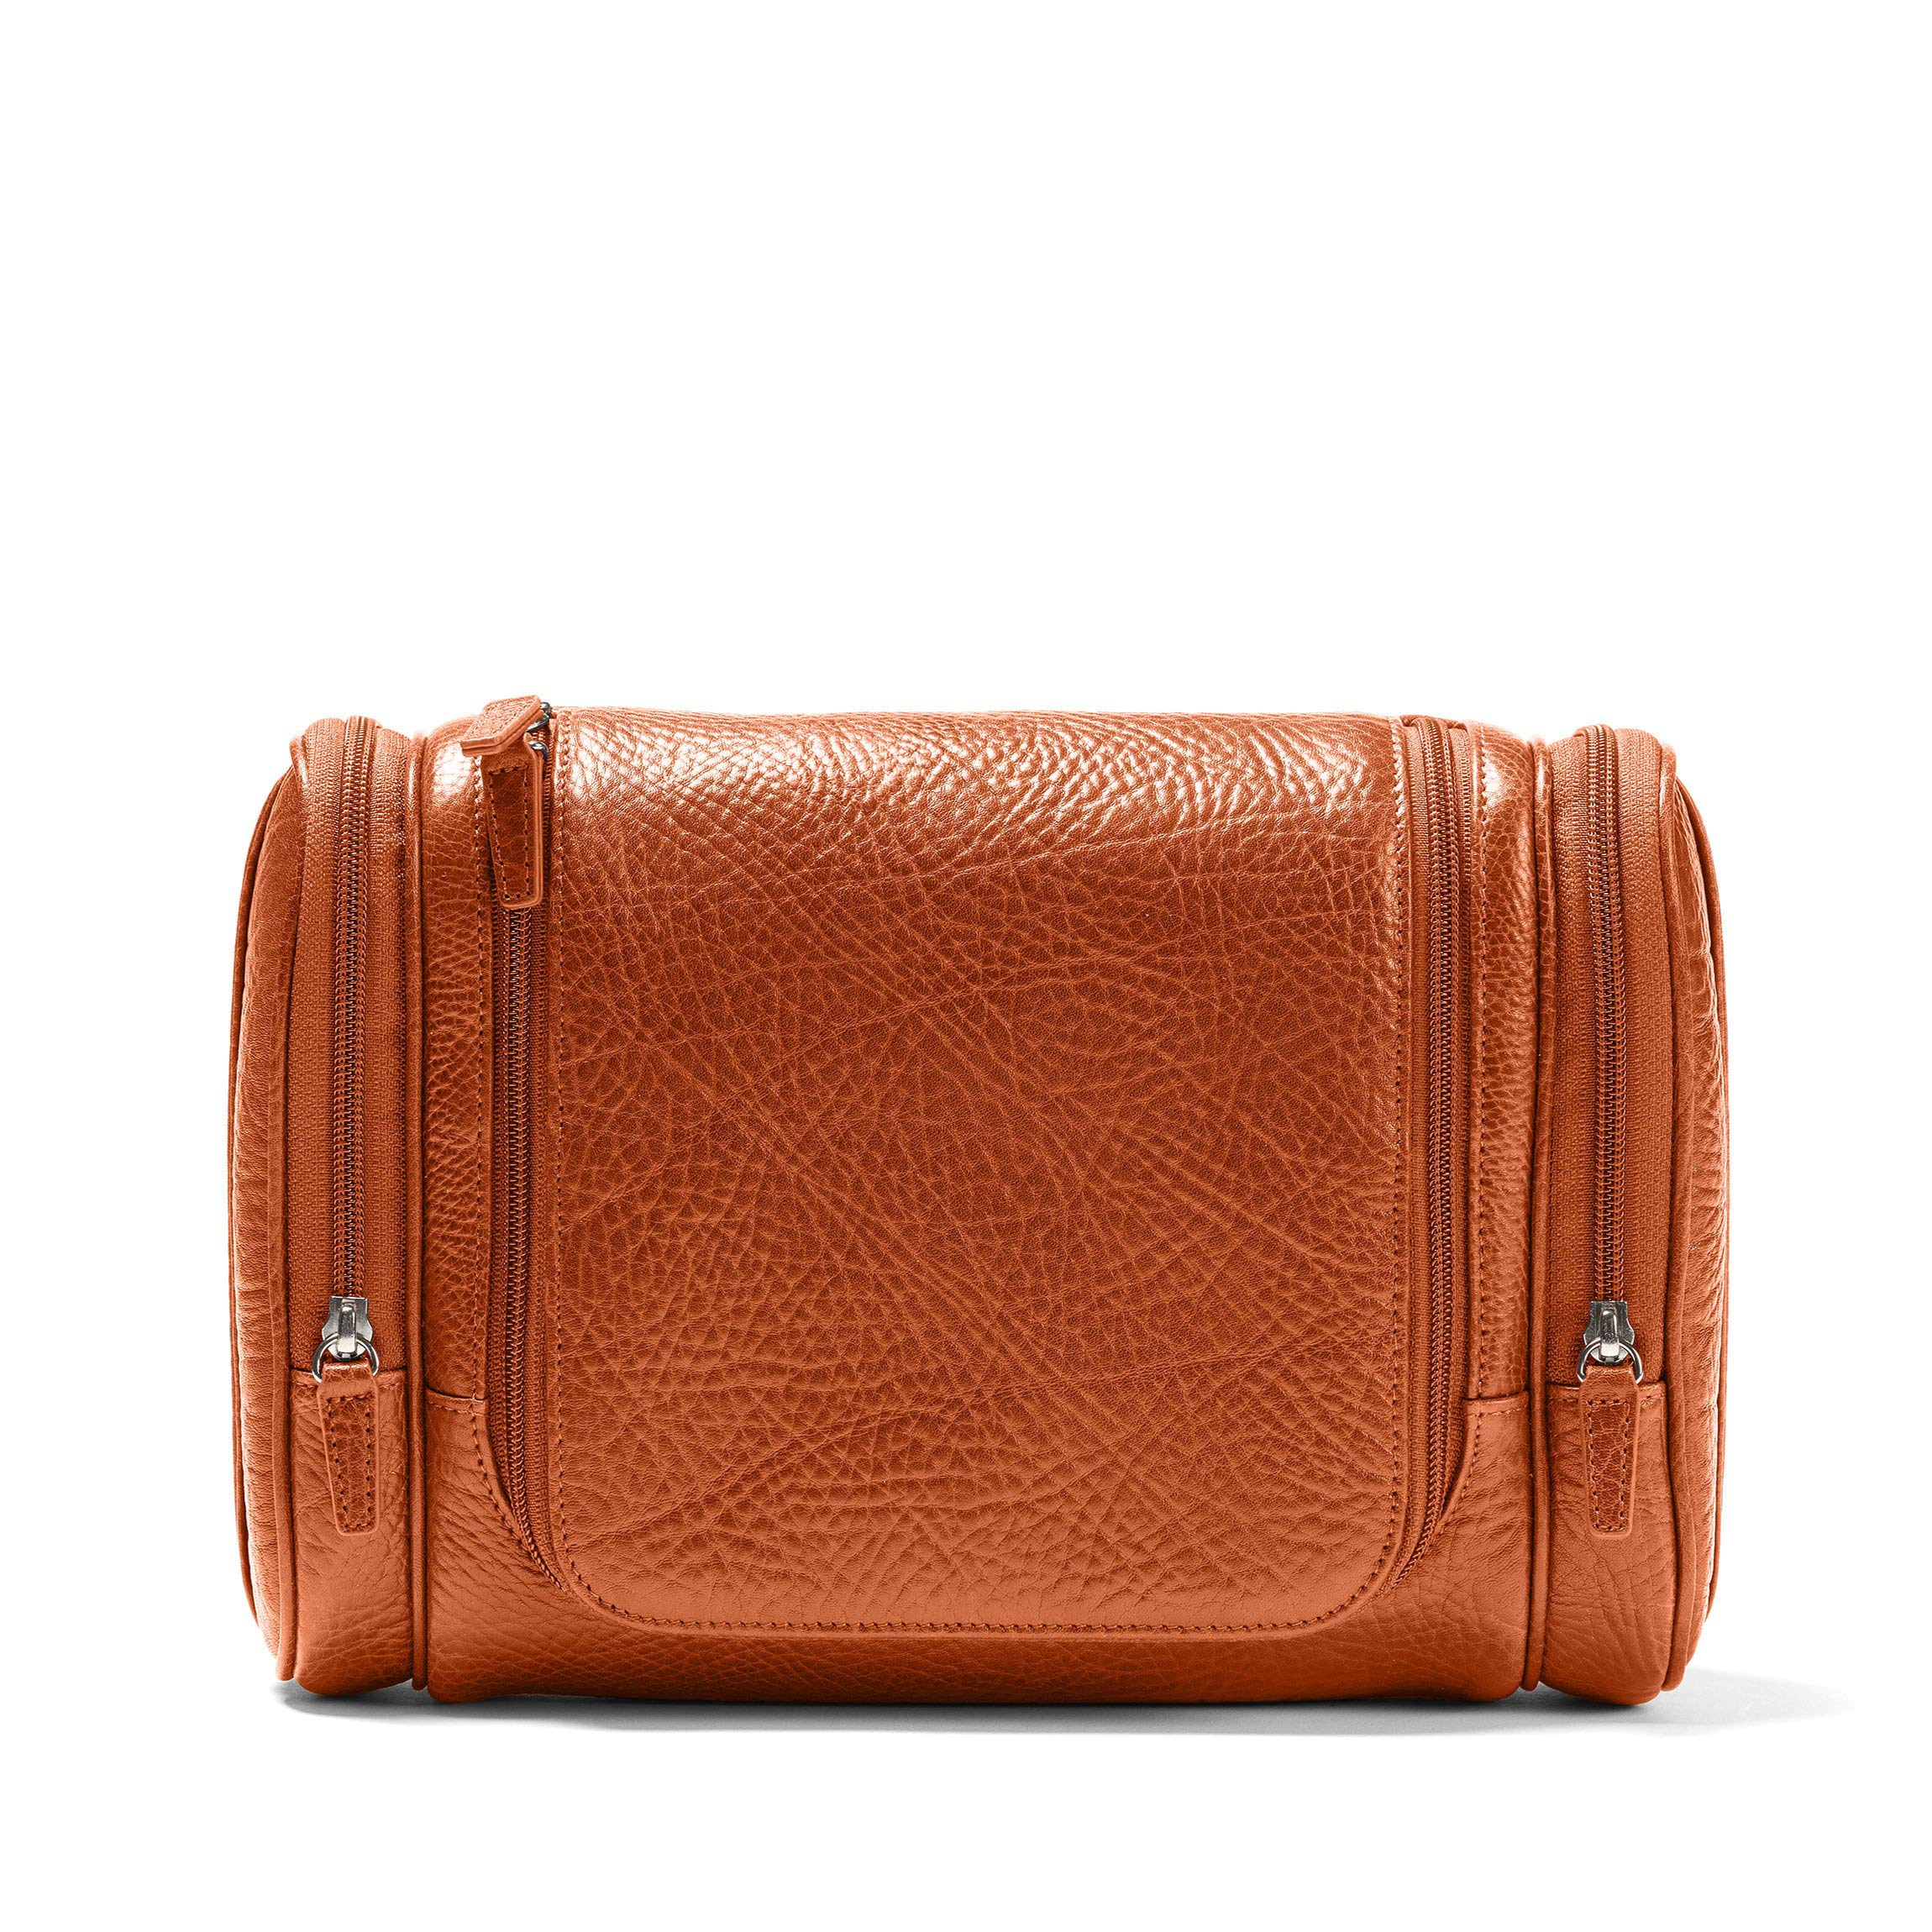 Leatherology Multi Pocket Hanging Toiletry - Italian Leather - Whiskey (brown)